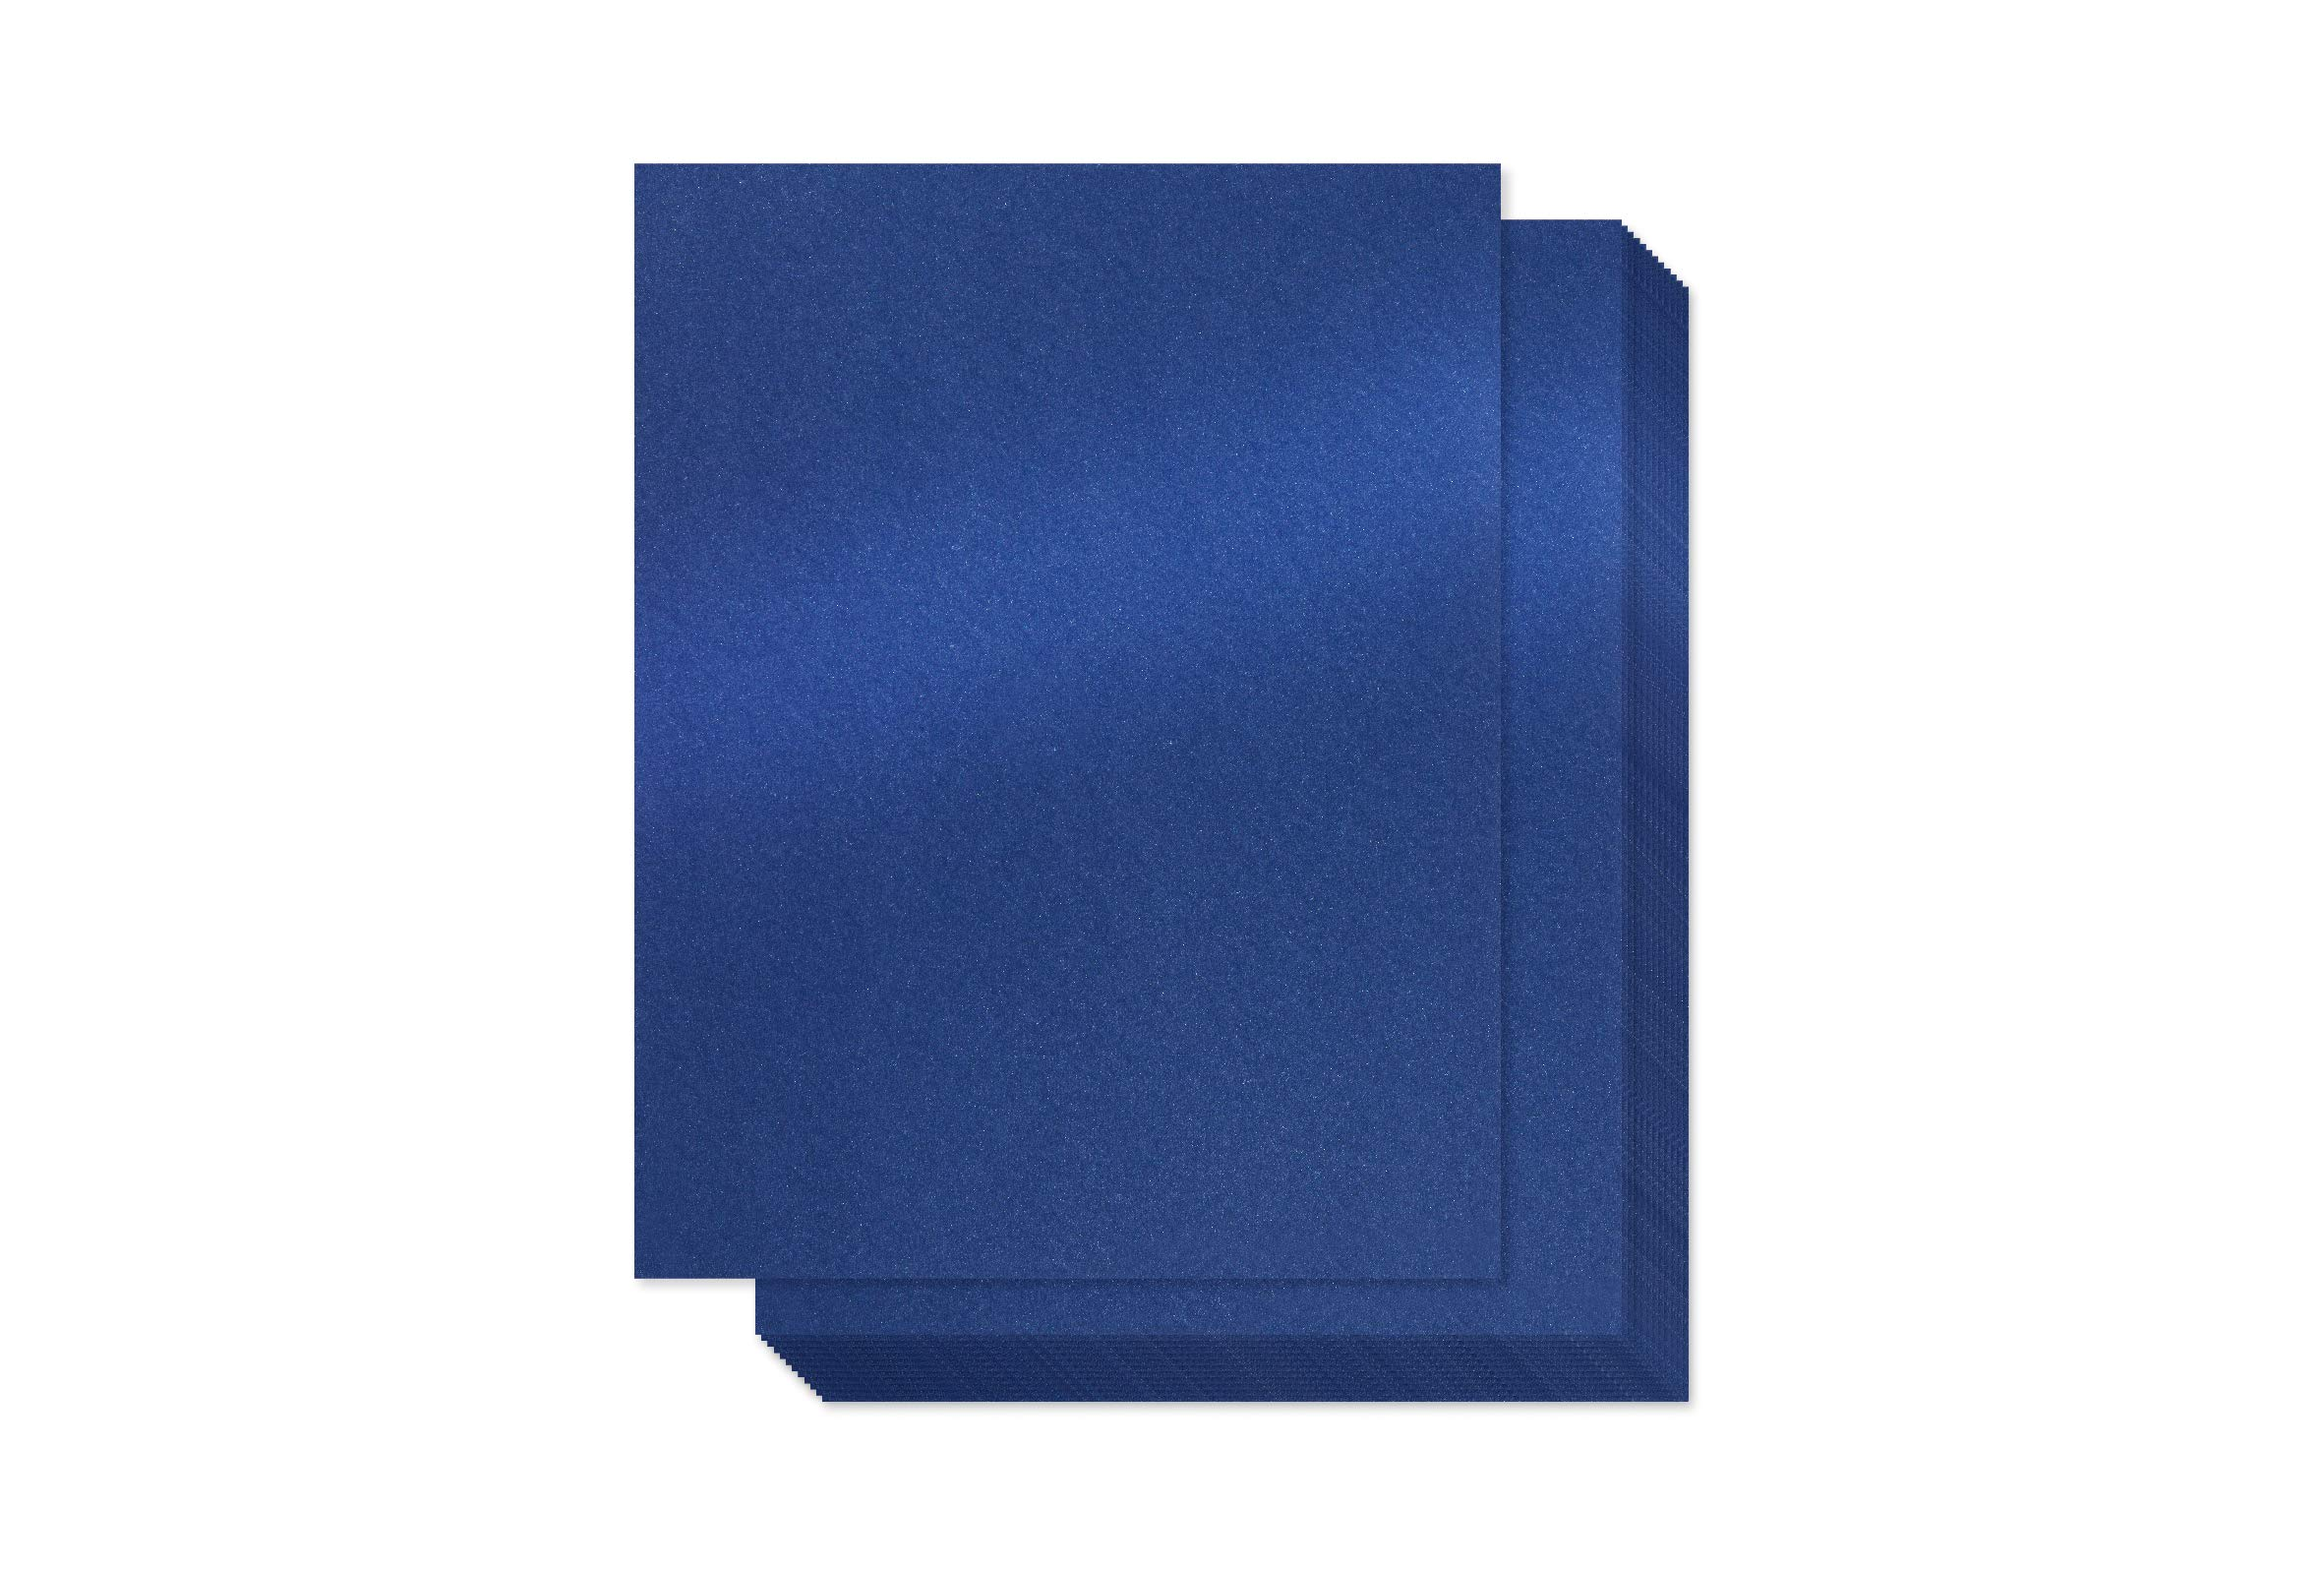 Navy Blue Shimmer Paper - 100-Pack Metallic Cardstock Paper, 92 lb Cover, Double Sided, Printer Friendly - Perfect for Weddings, Birthdays, Craft Use, Letter Size Sheets, 8.5 x 11 Inches by Bubbley